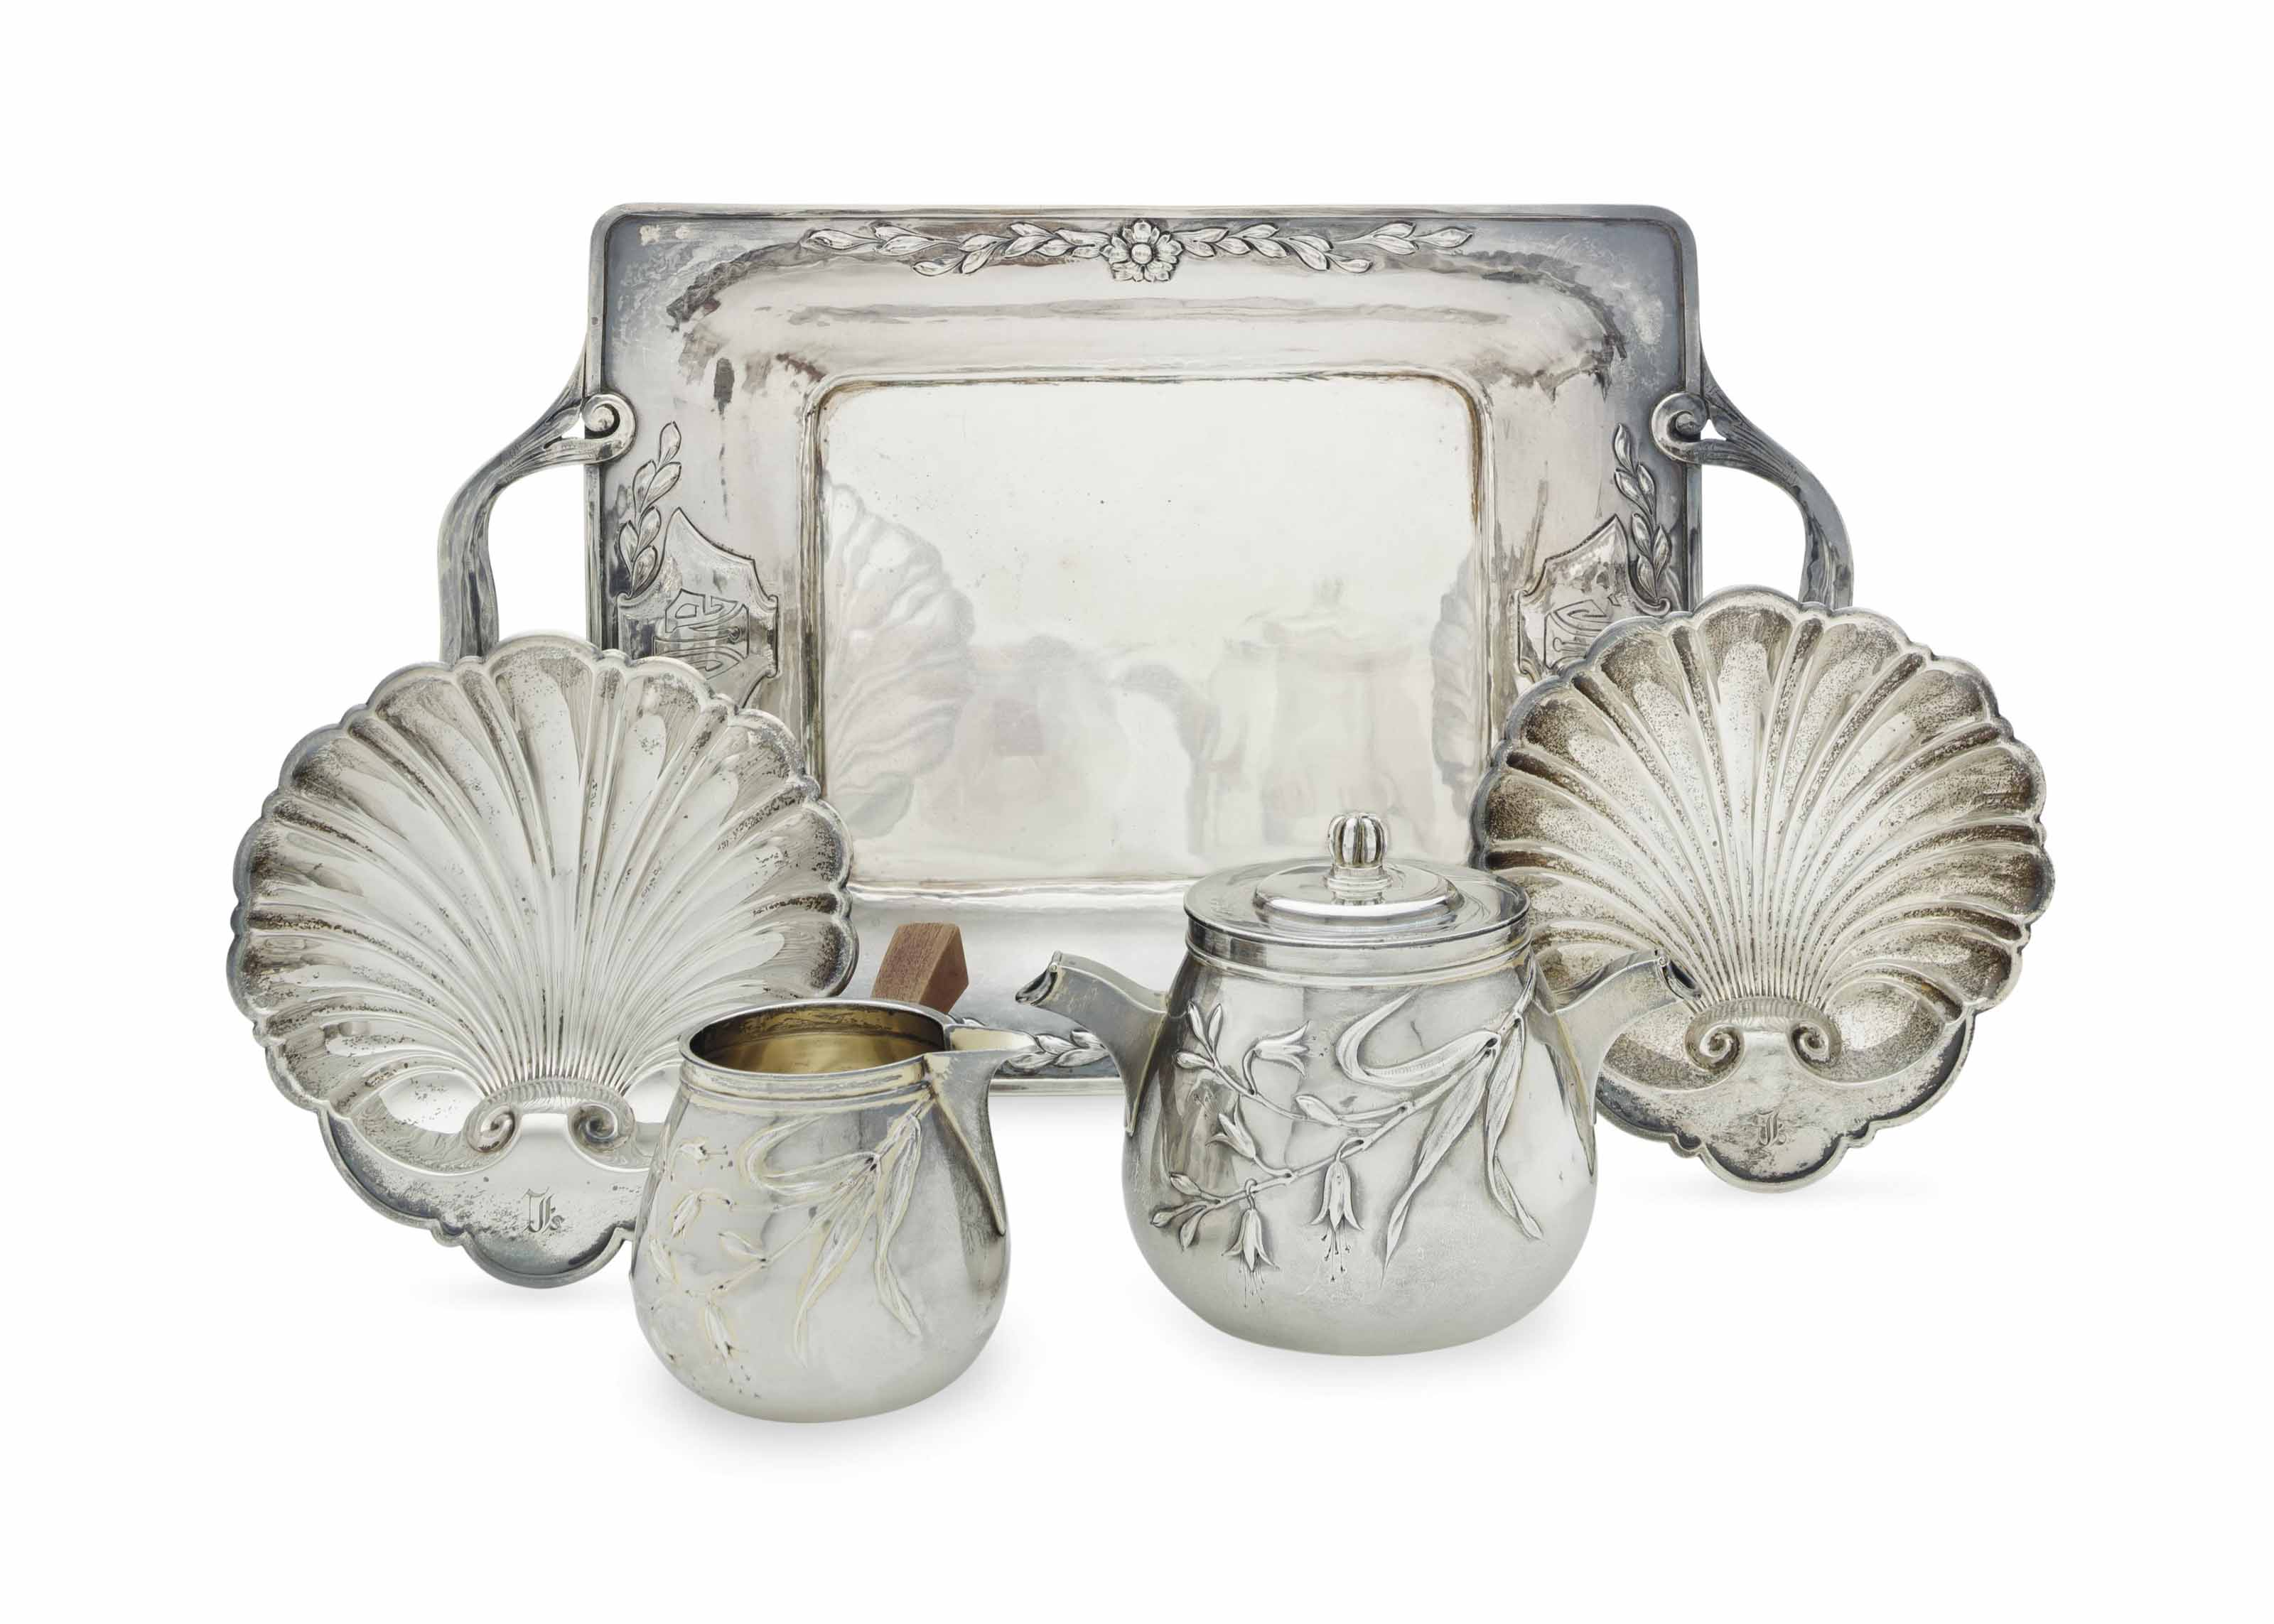 A GROUP OF FRENCH AND AMERICAN SILVER TABLE WARES